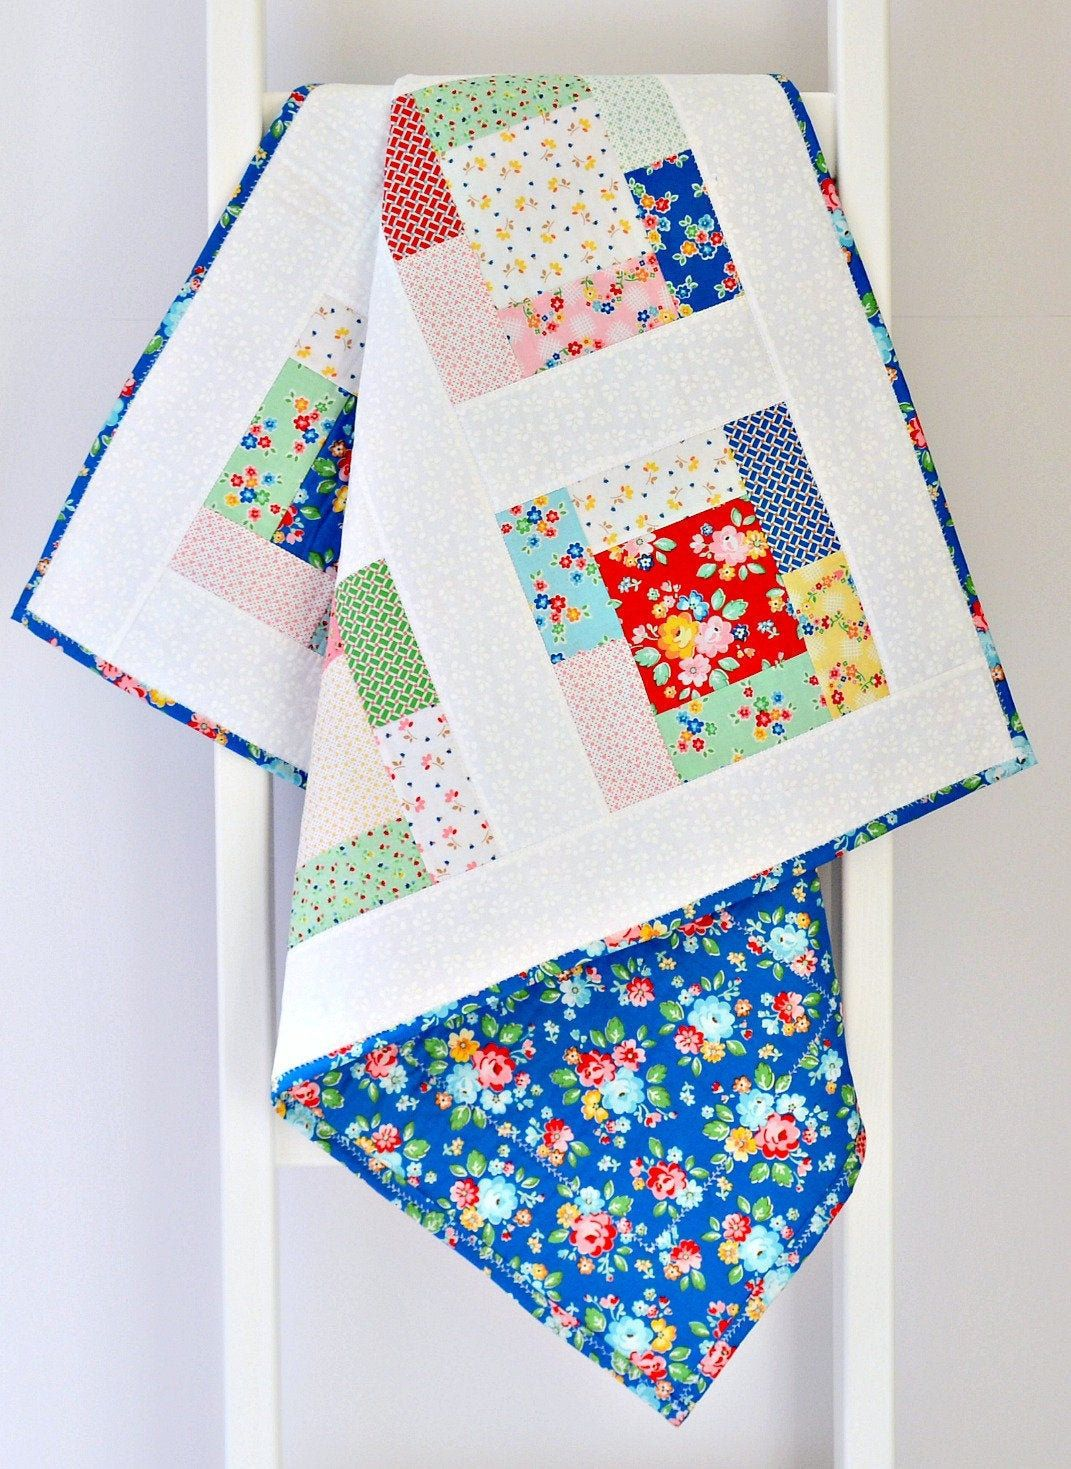 unisex green white red patchwork coton fabric and batting and minky back Baby quilt blanket handmade and unique for a girl or a boy